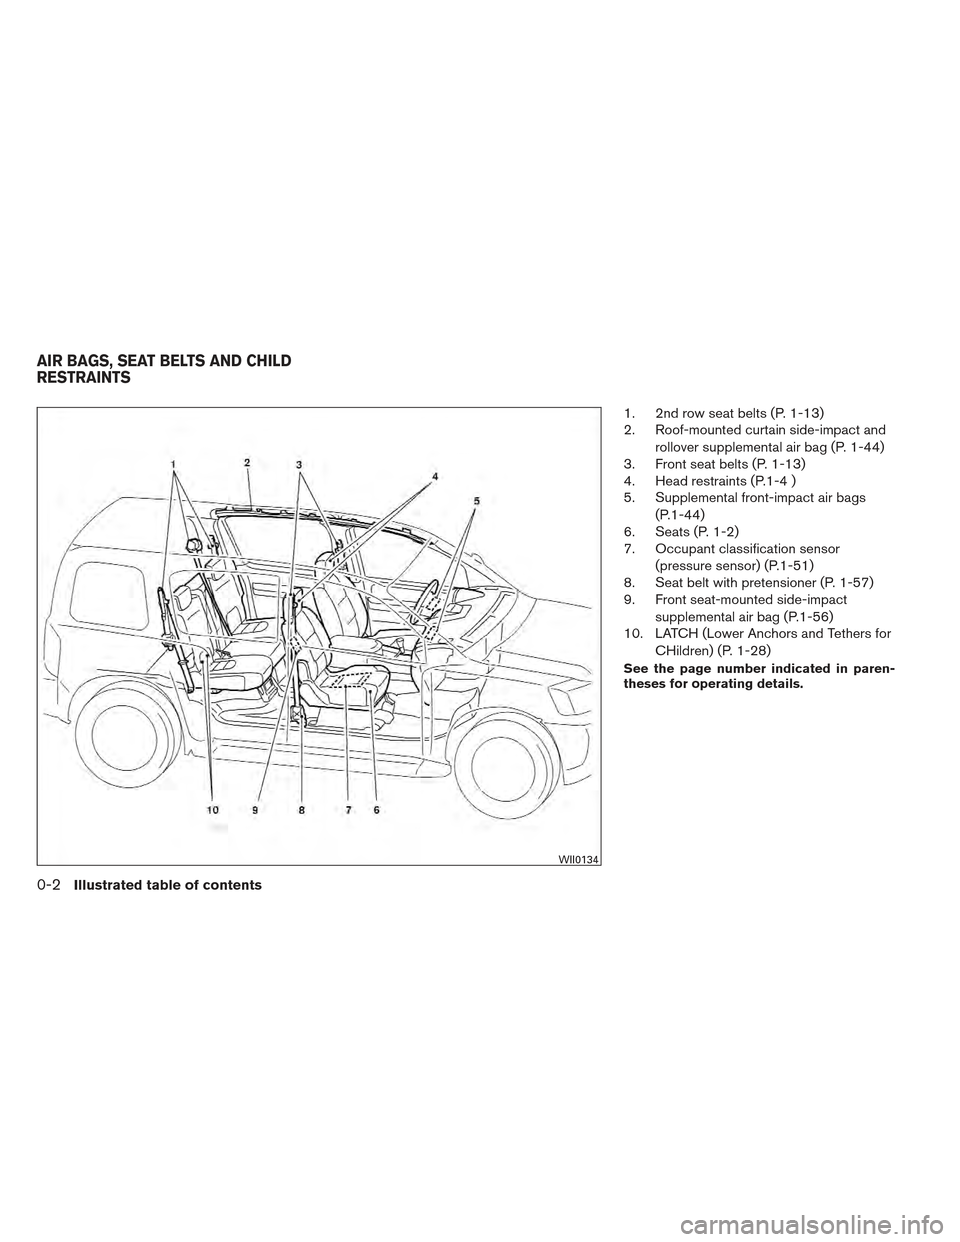 NISSAN XTERRA 2012 N50 / 2.G Owners Manual 1. 2nd row seat belts (P. 1-13) 2. Roof-mounted curtain side-impact androllover supplemental air bag (P. 1-44) 3. Front seat belts (P. 1-13) 4. Head restraints (P.1-4 ) 5. Supplemental front-impact ai